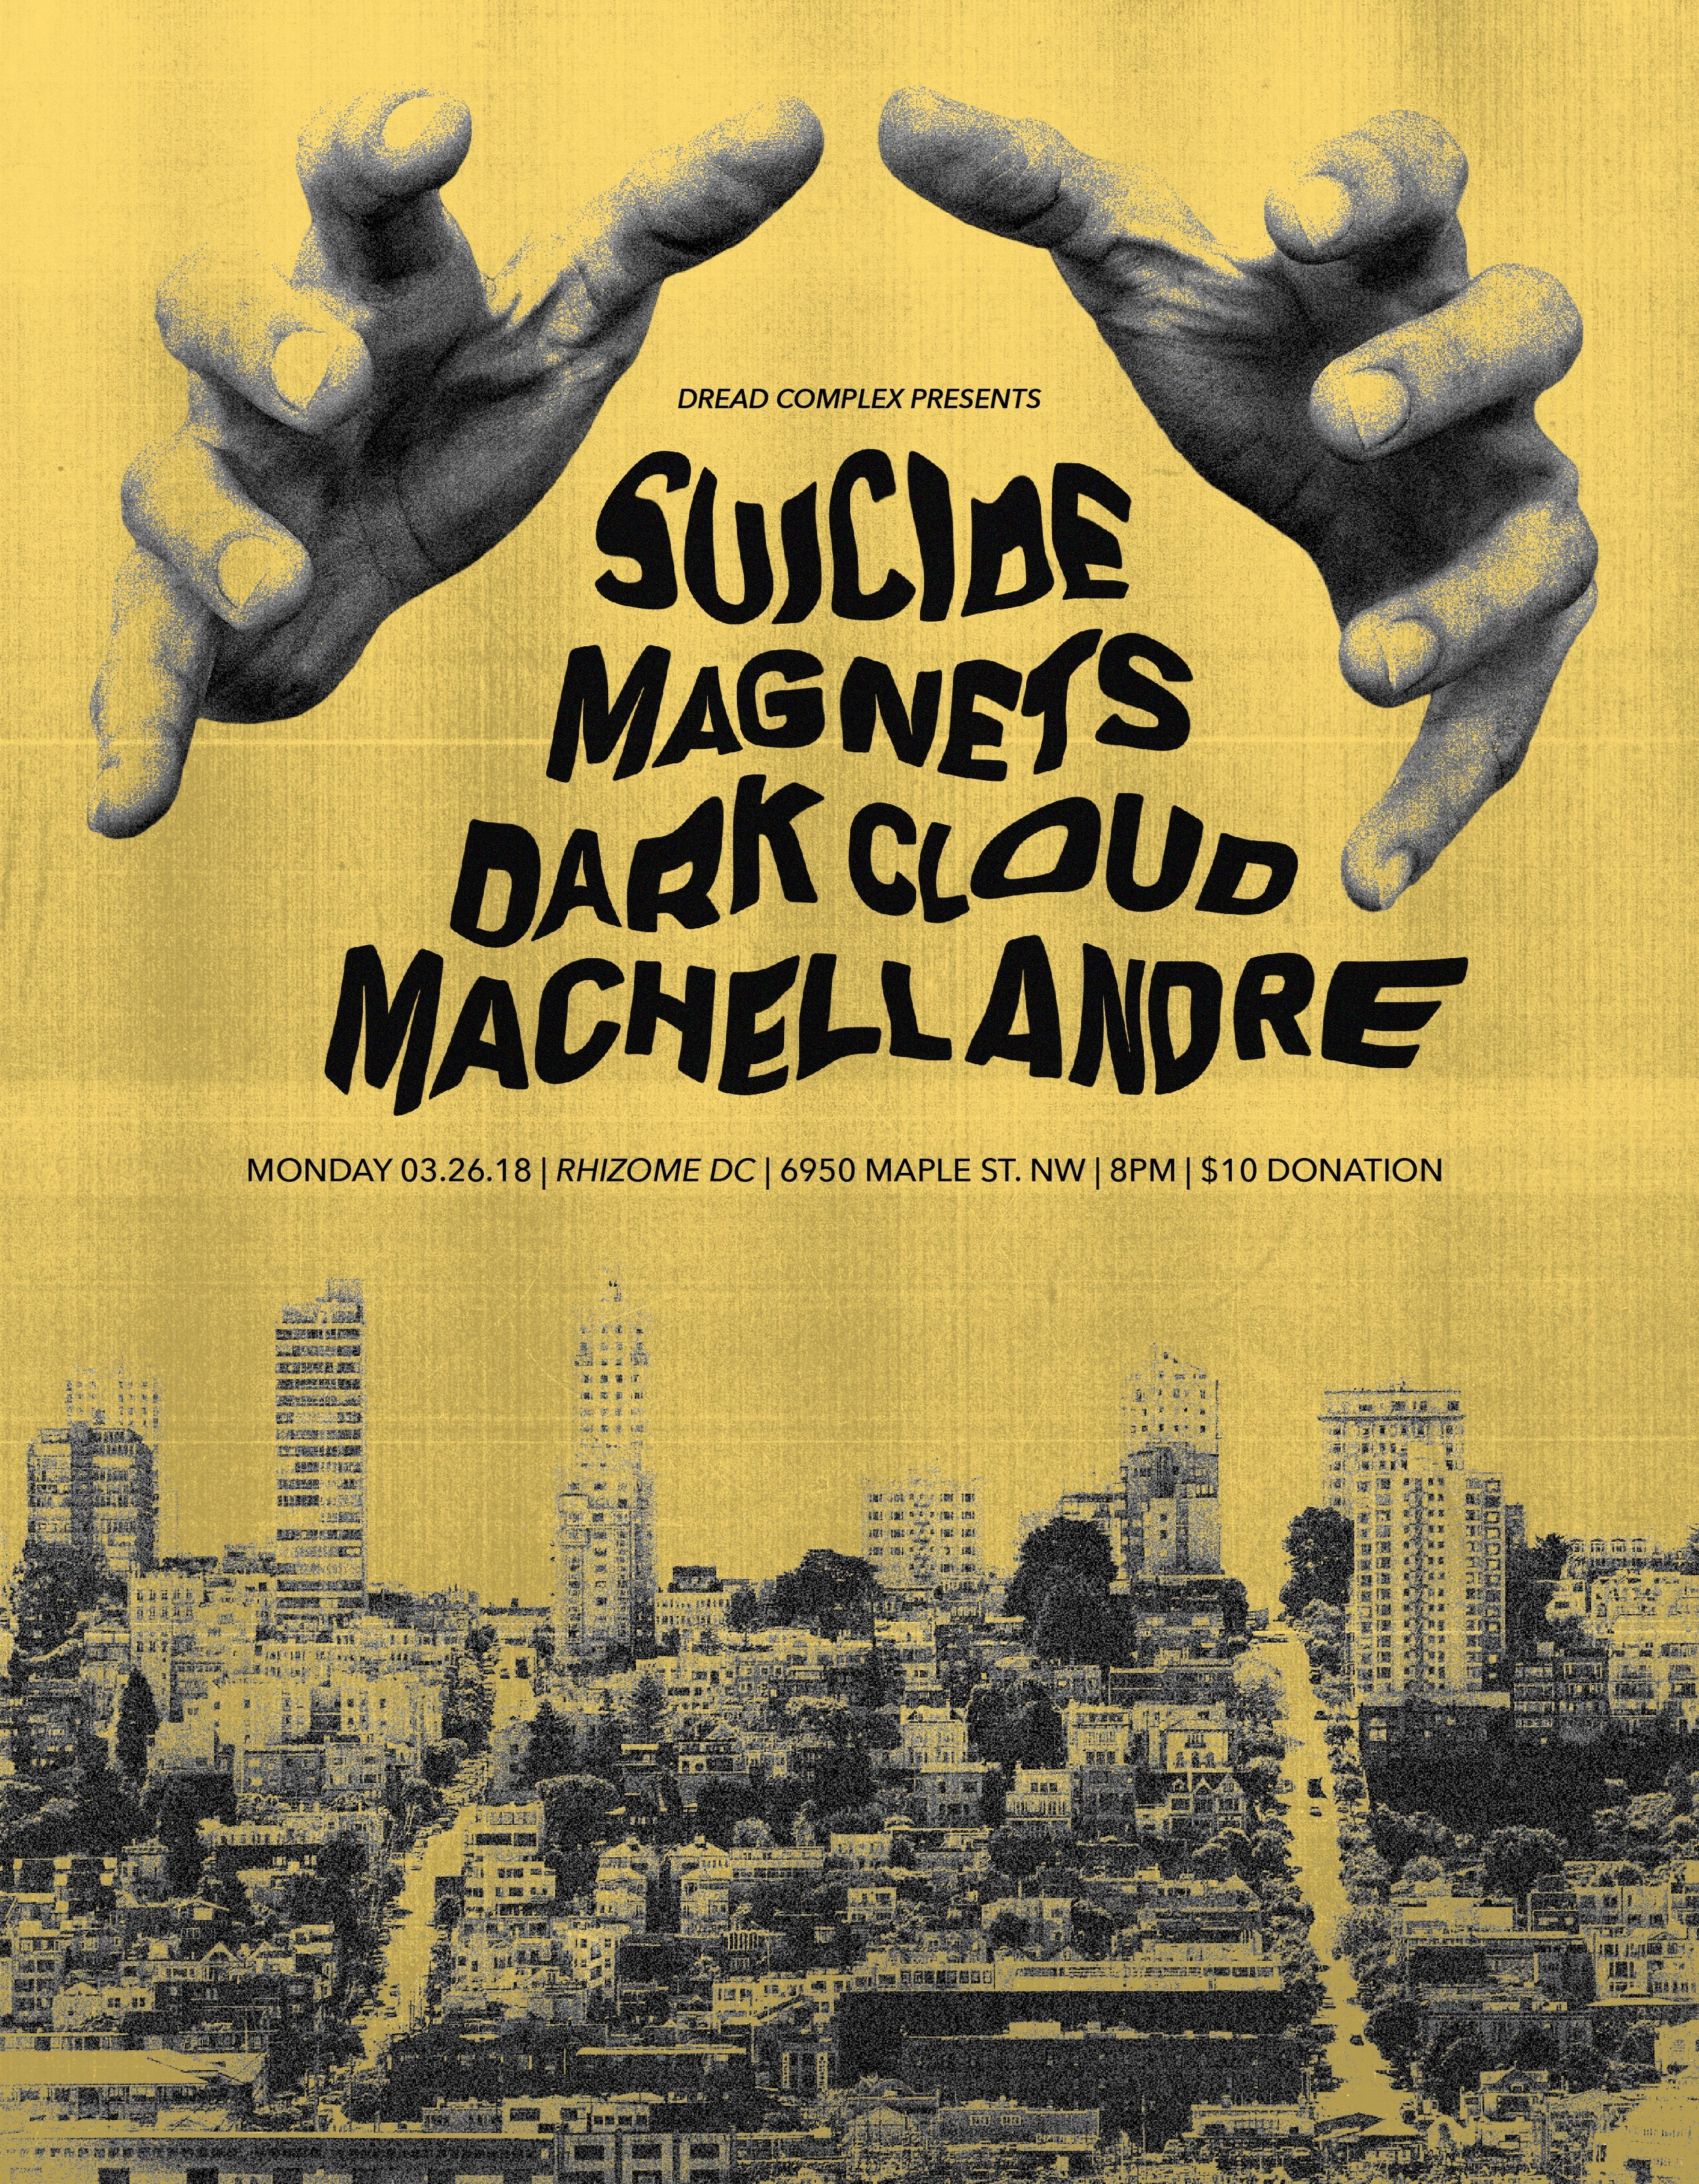 Monday March 26th 8PM       $10   Suicide Magnets  (Providence RI) is the spooky, cathartic sonic realizations of Providence Rhode Island's Wendy Jane Hyatt. A washing machine of the mind made visceral through severe affectation of the voice and guitar, along with bass and percussion. A Casablanca of song-poem revelry, the suicide magnets squall always hits below the belt and leaves you as soul-satisfied as a half-remembered dream of travel to a distant, unforgiving land.   http://suicidemagnets.com/    Dark Cloud  sings the torch songs of the Shadow of the Mountain, a portal ripped to a fantasy-future dimension of how the West was undone. Skeletal music/soundscape shifting between lament and protest.   Machell André